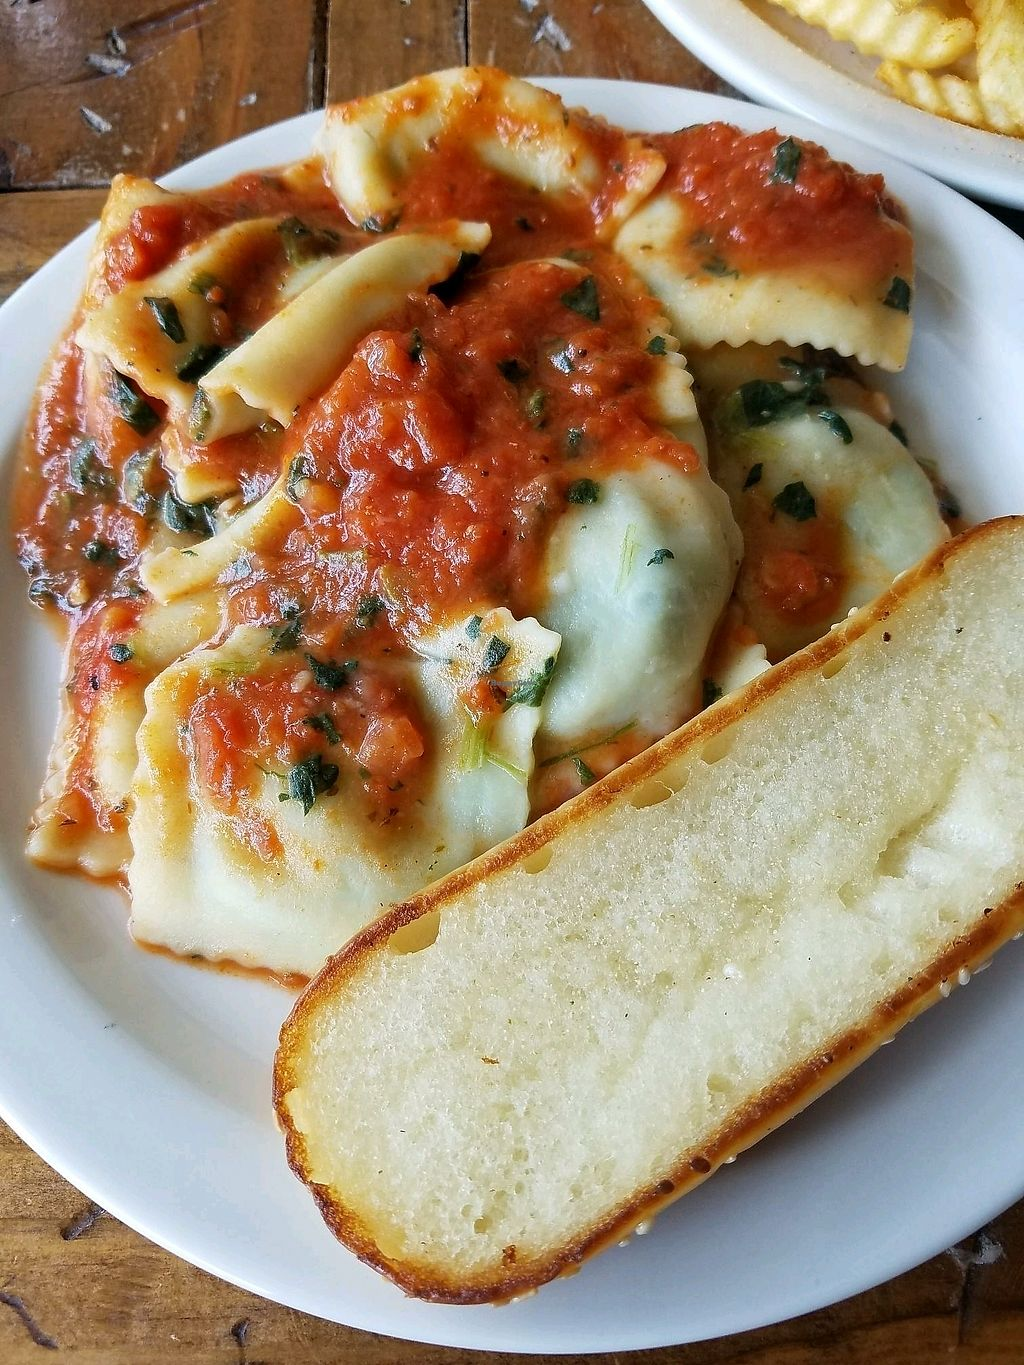 """Photo of Imagine Vegan Cafe  by <a href=""""/members/profile/NickJ"""">NickJ</a> <br/>Spinach Ravioli <br/> October 2, 2017  - <a href='/contact/abuse/image/26621/311157'>Report</a>"""